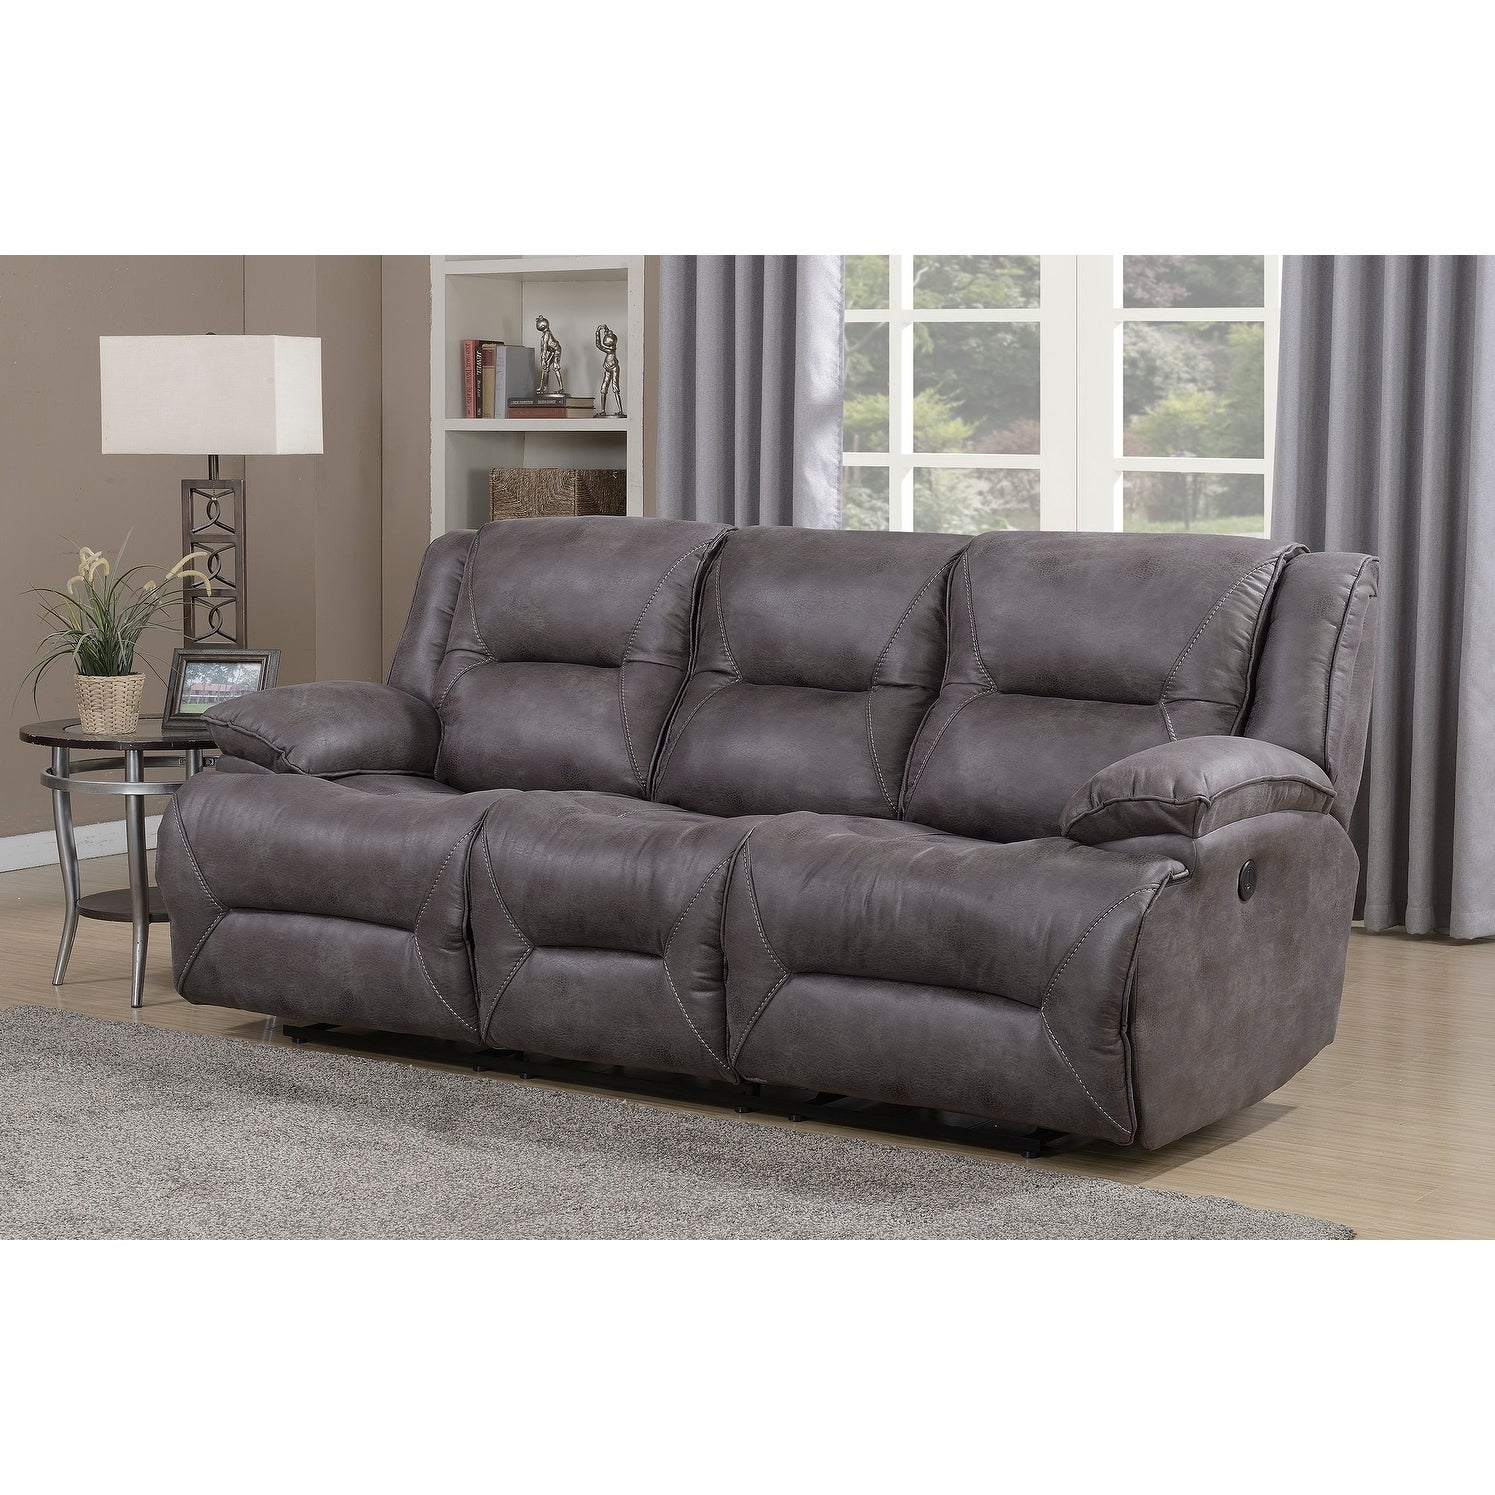 Dylan Dual Reclining Sofa With Memory Foam Seat Toppers And Usb Charging Ports Free Shipping Today 17610820